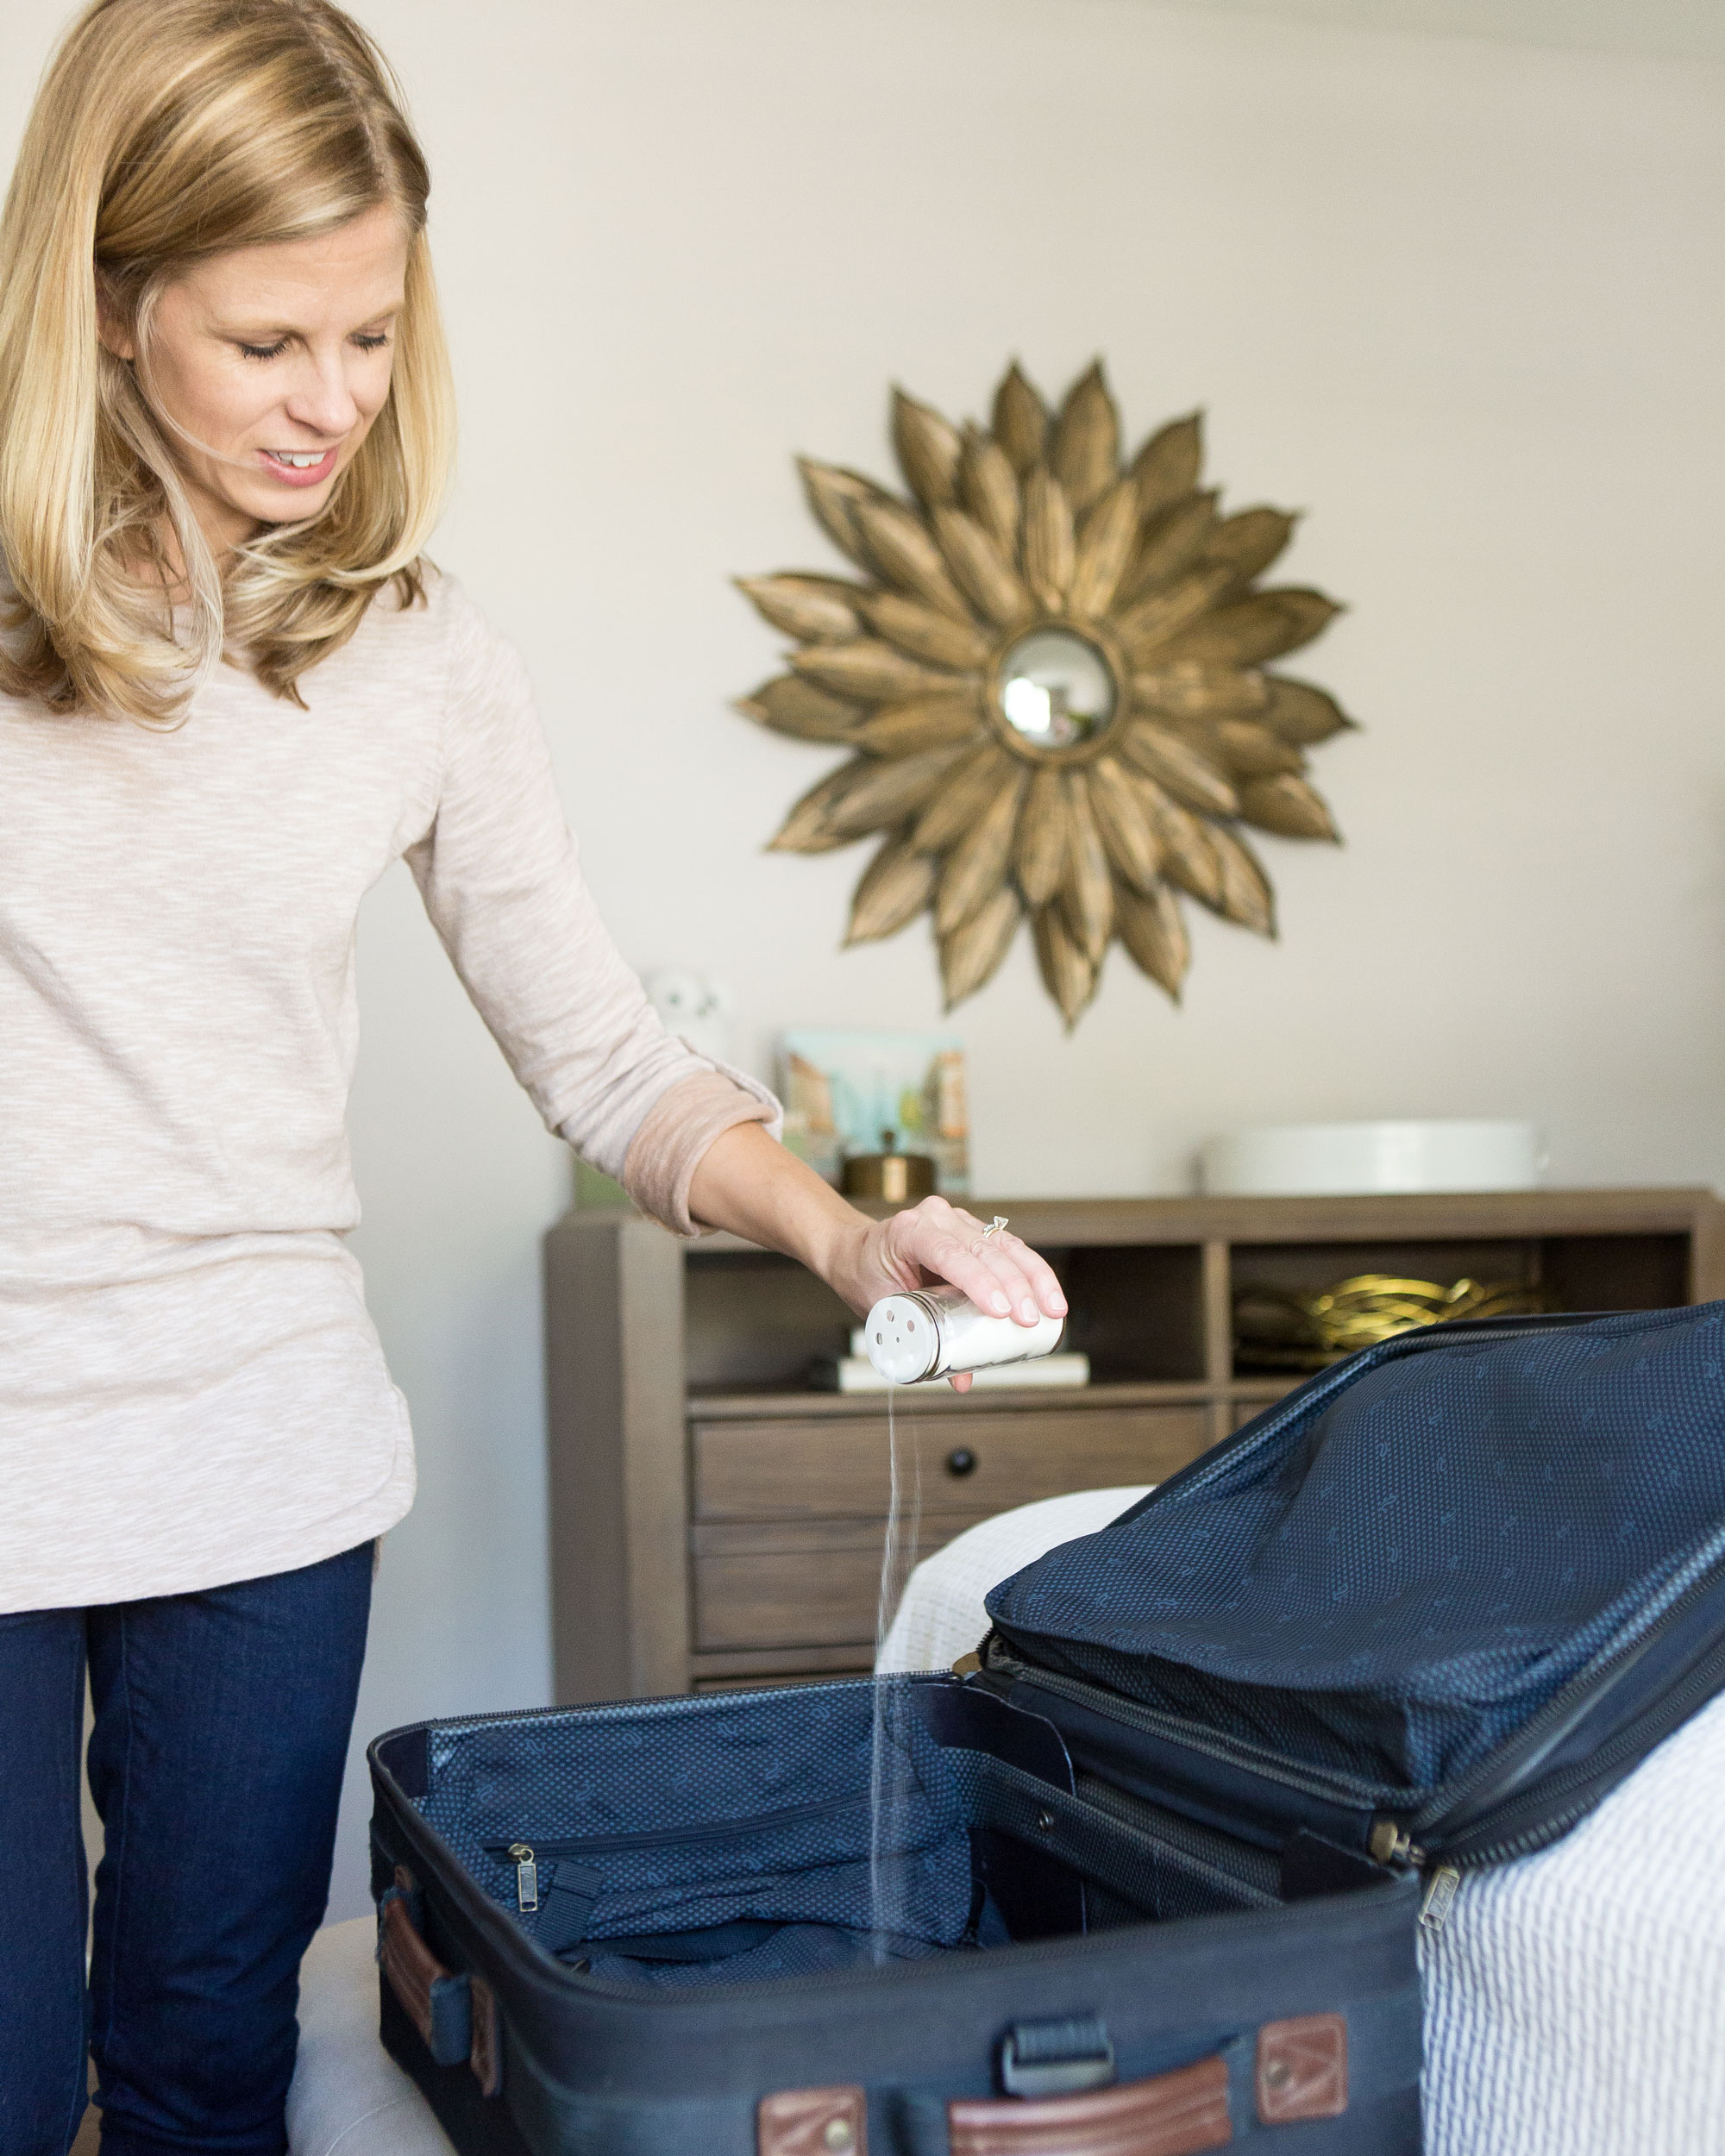 how-to-freshen-cleaning-suitcase-with-baking-soda-0316.jpg